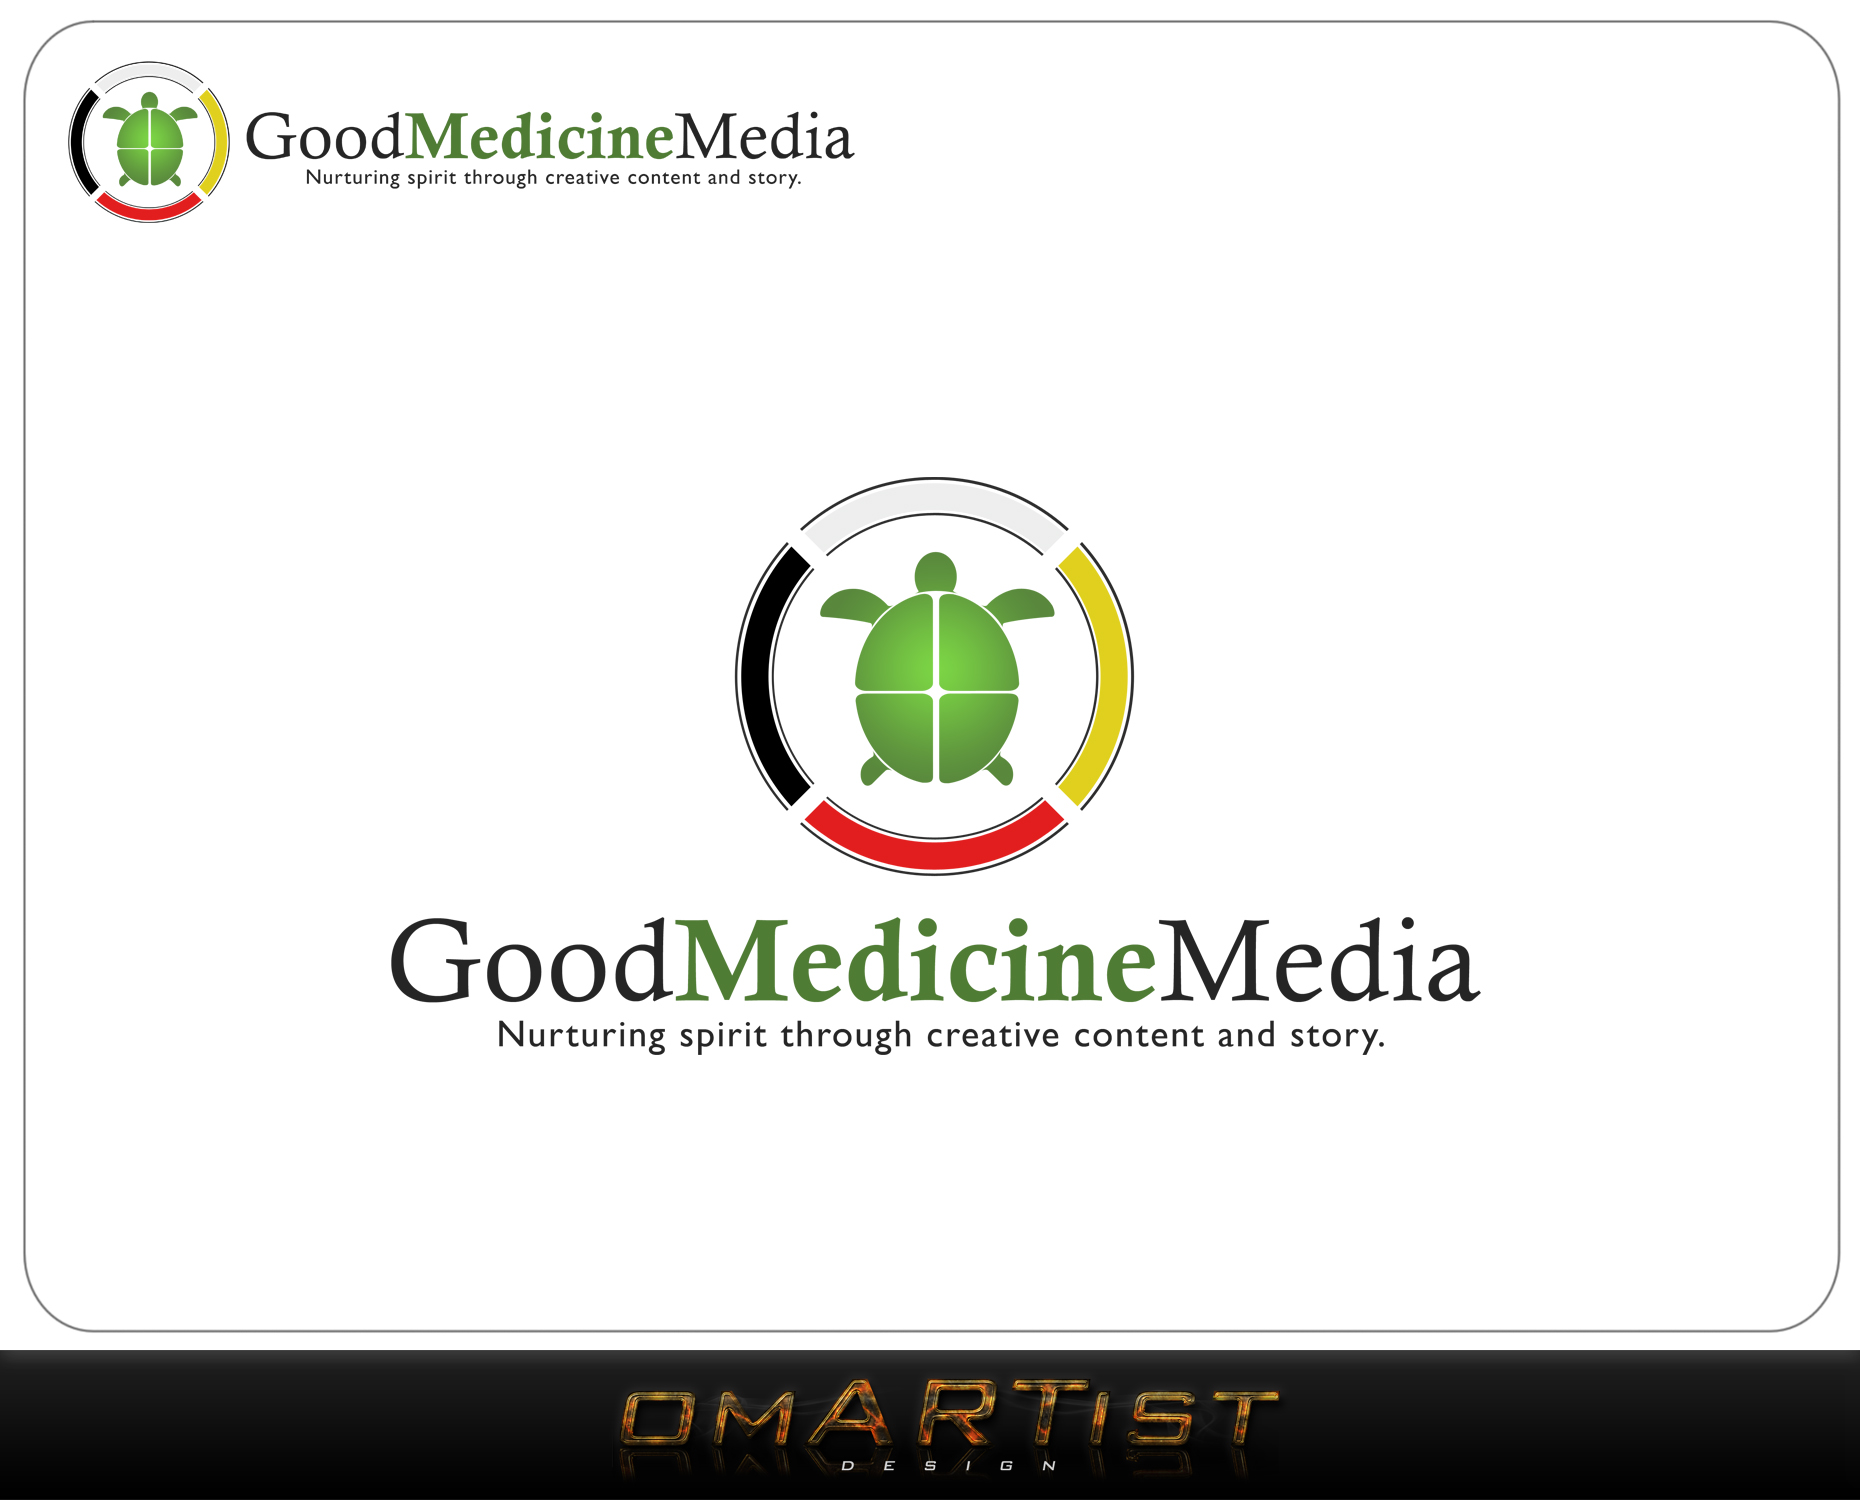 Logo Design by omARTist - Entry No. 141 in the Logo Design Contest Good Medicine Media Logo Design.